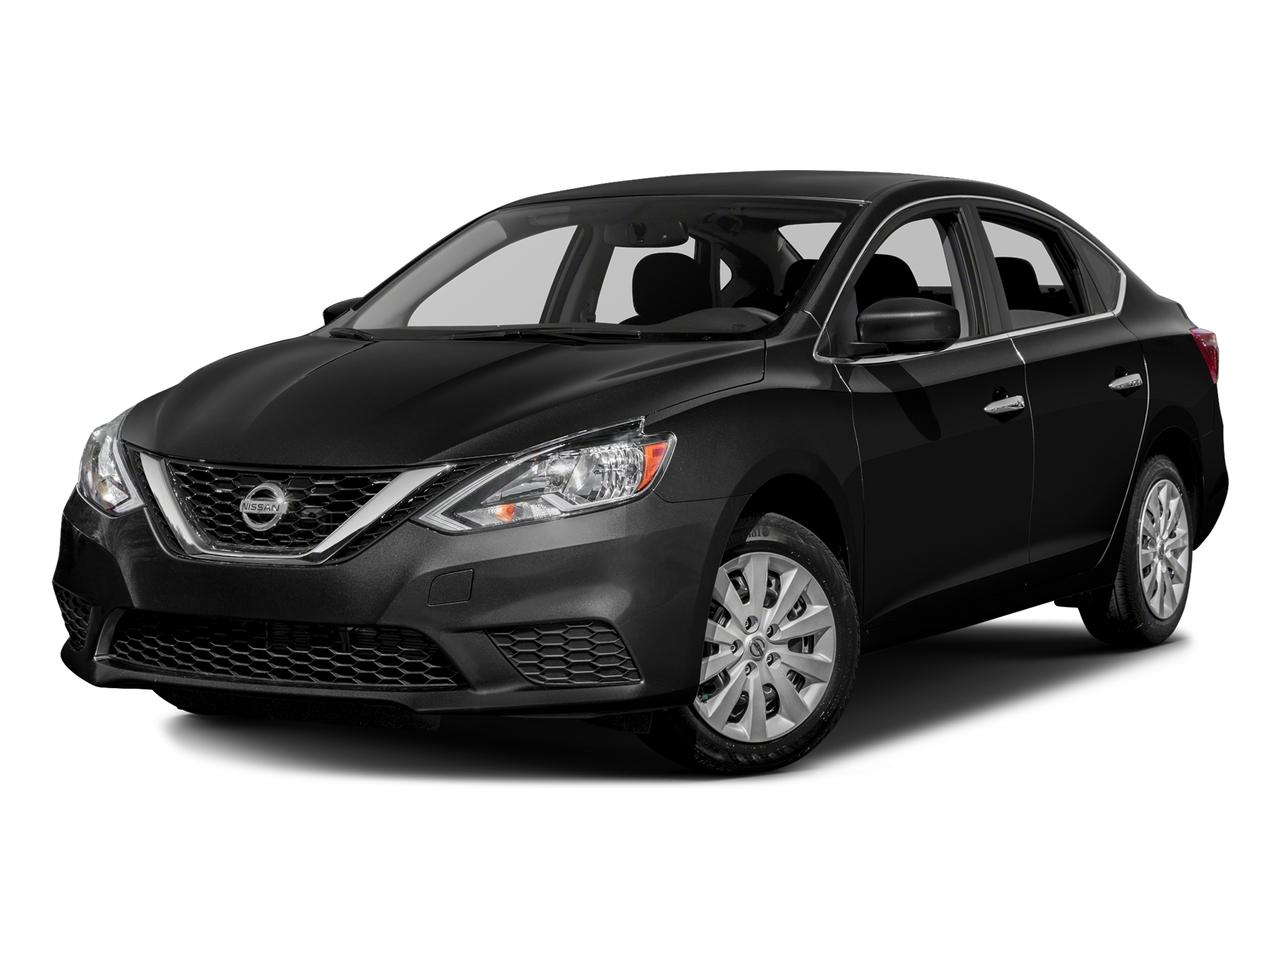 2016 Nissan Sentra Vehicle Photo in Owensboro, KY 42302